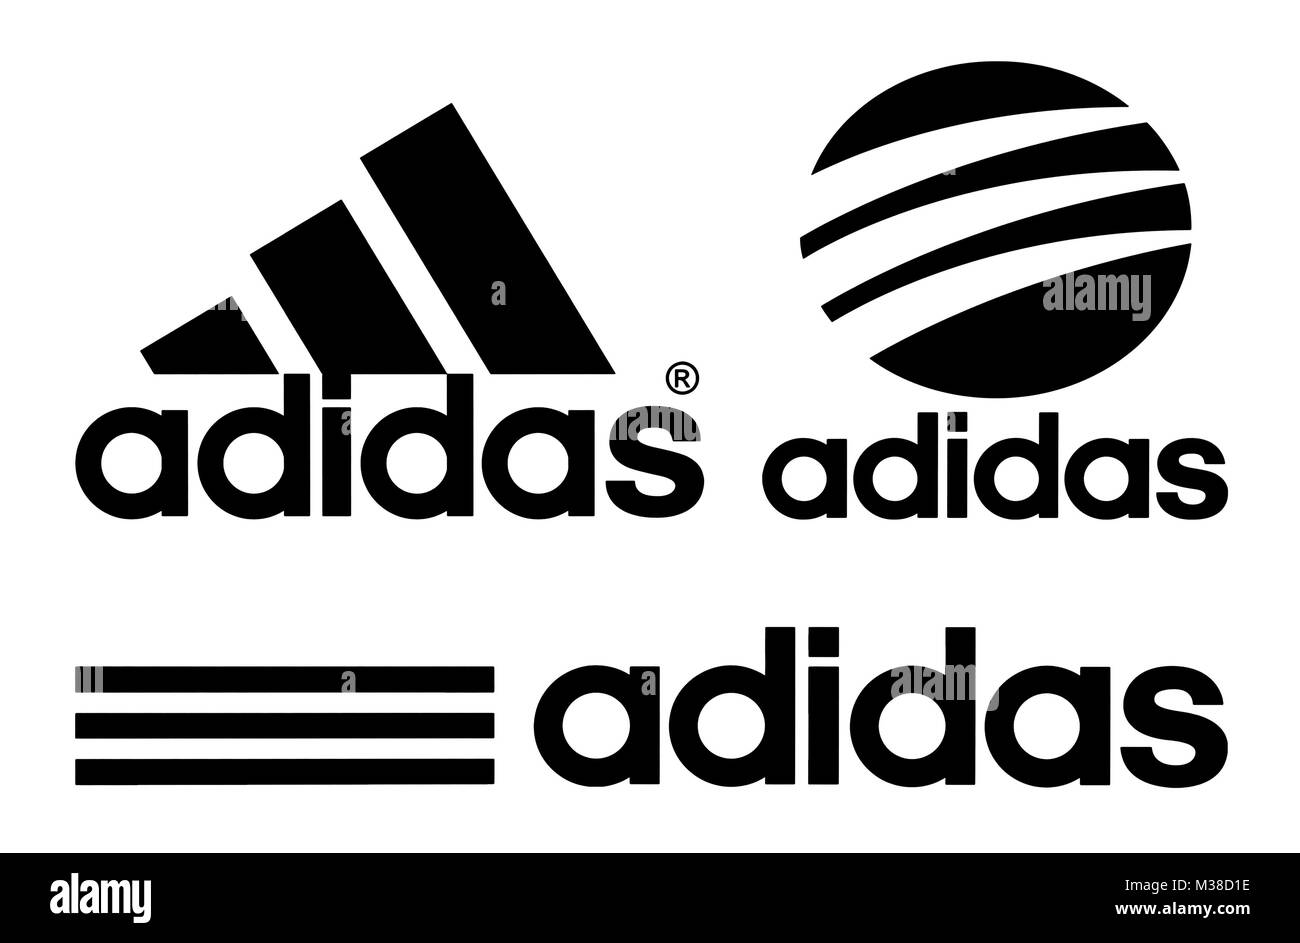 Kiev, Ukraine - October 27, 2017: Collection of Adidas logos printed on white paper. Adidas is a German multinational Stock Photo